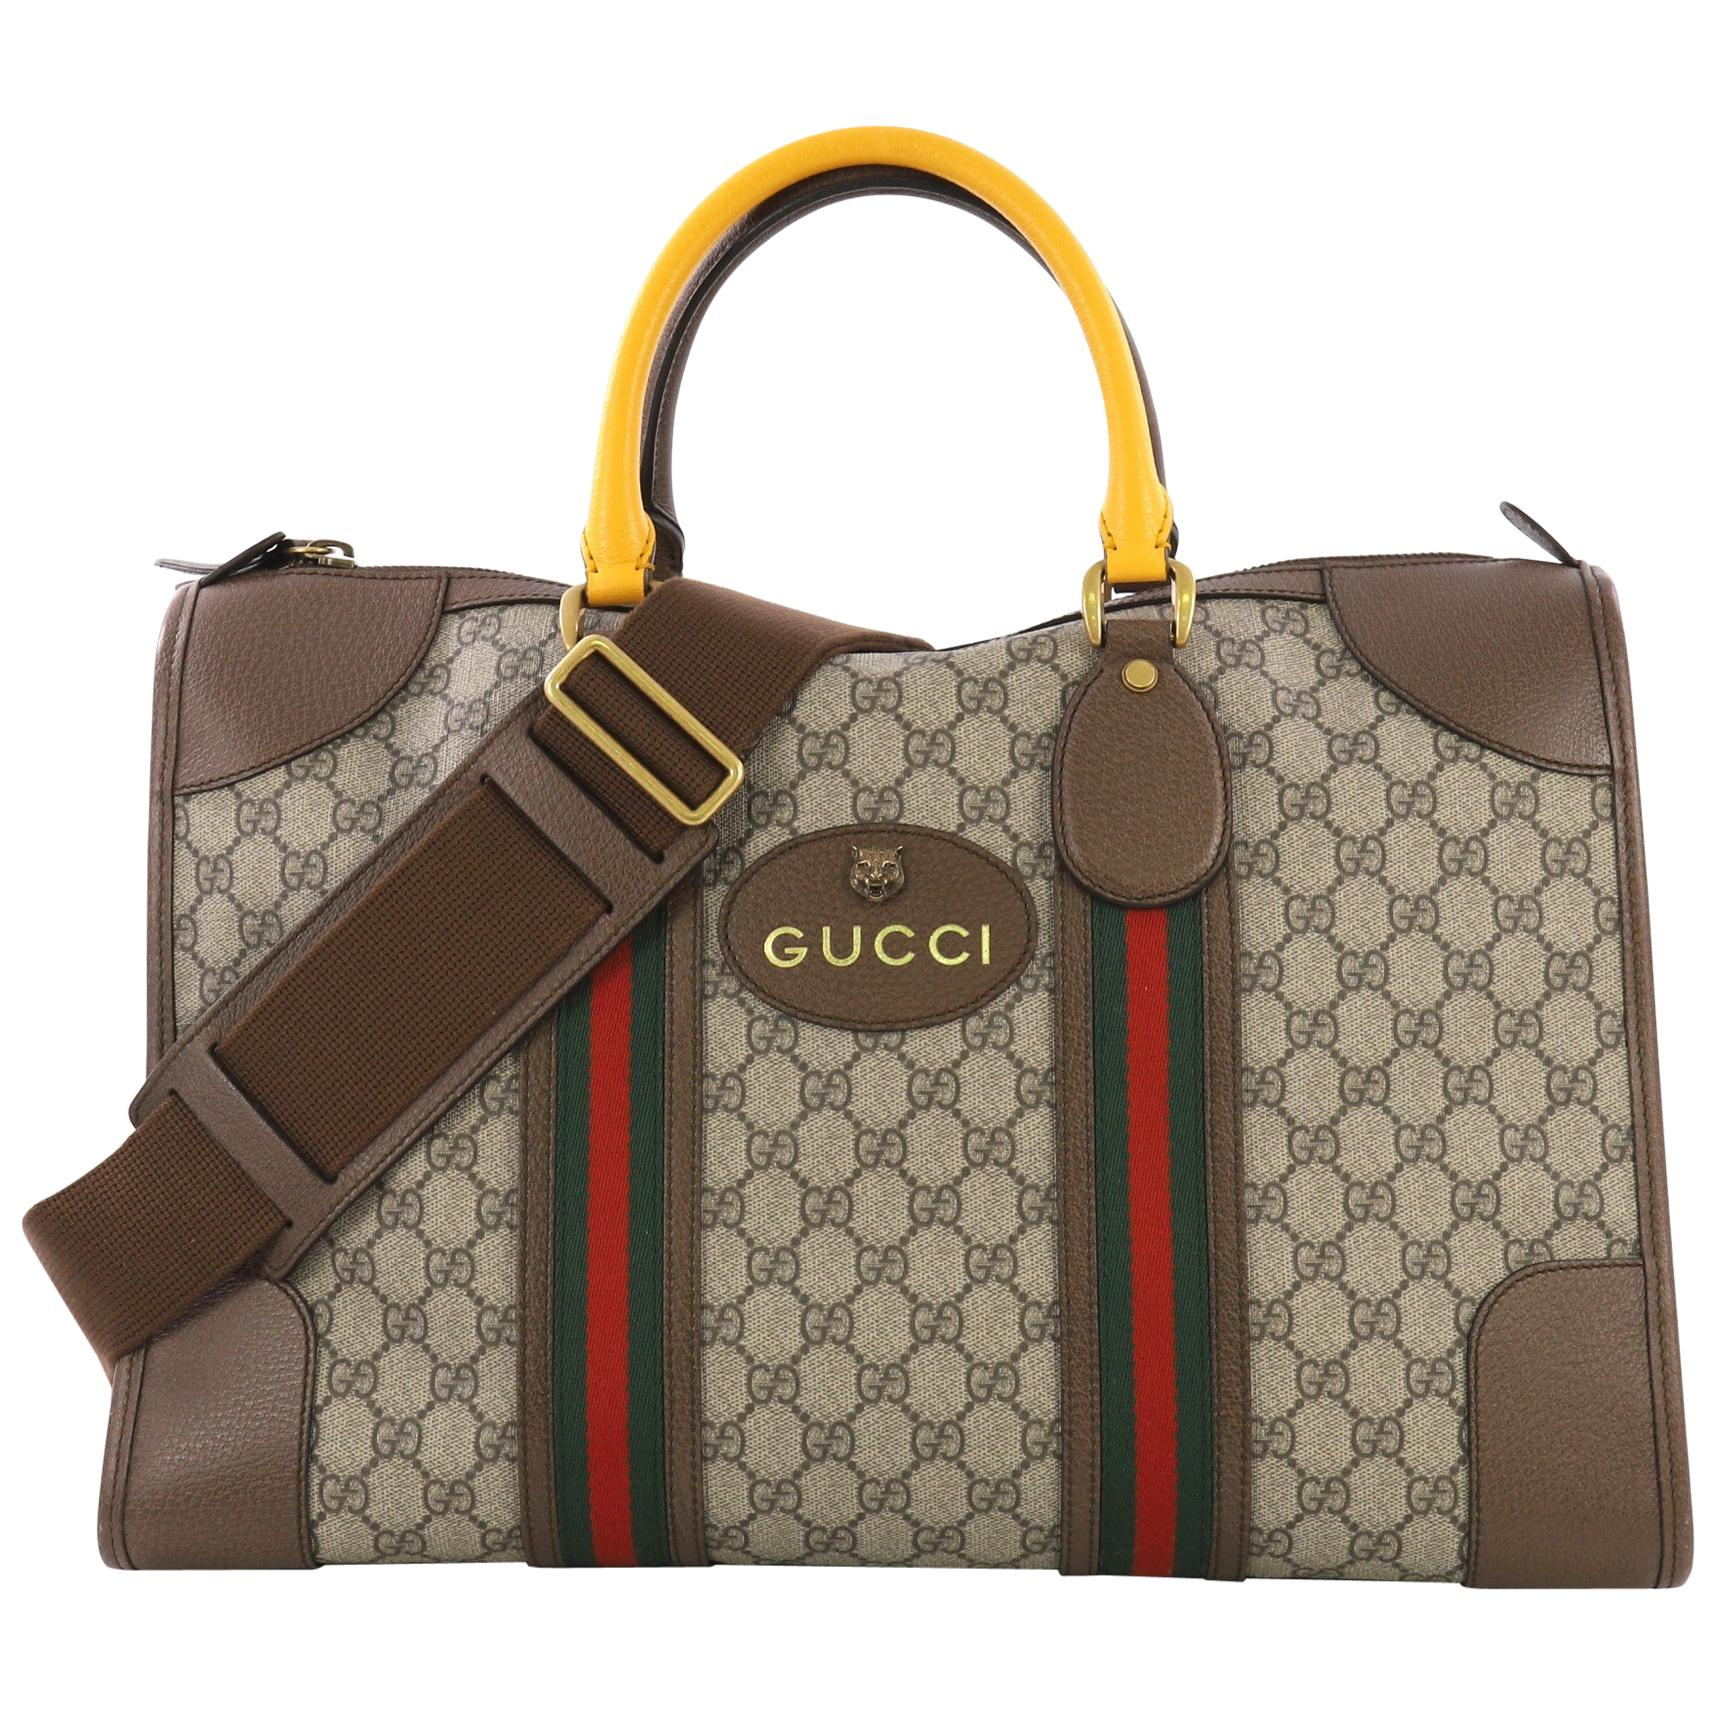 181b848c7d3 Vintage Gucci Luggage and Travel Bags - 84 For Sale at 1stdibs